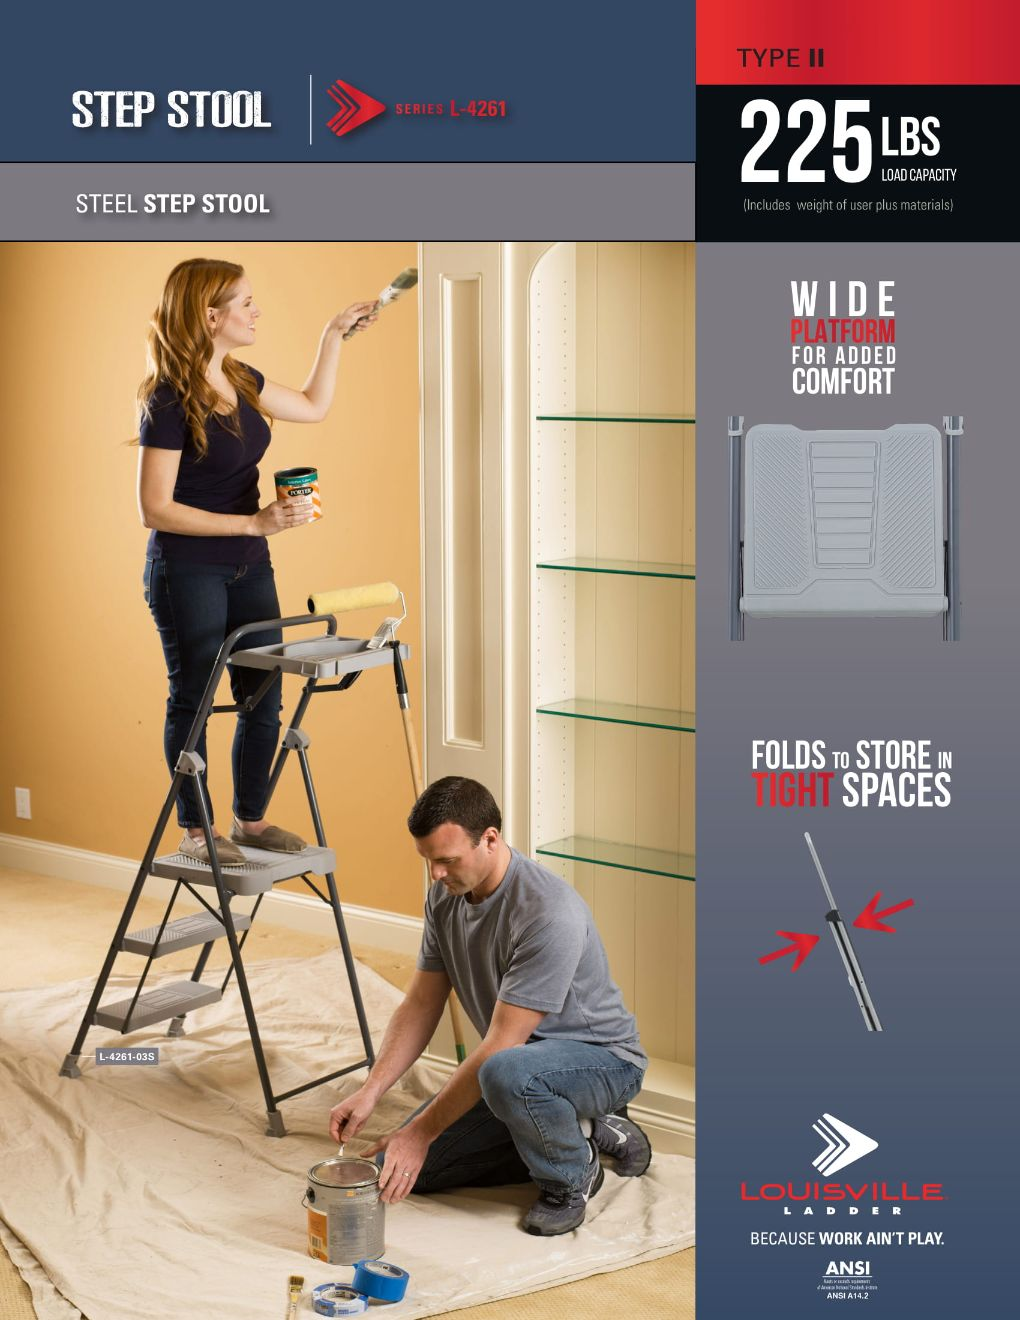 L-4261 Step Stool Ladder Flyer and Spec Sheet Marketing Material Image